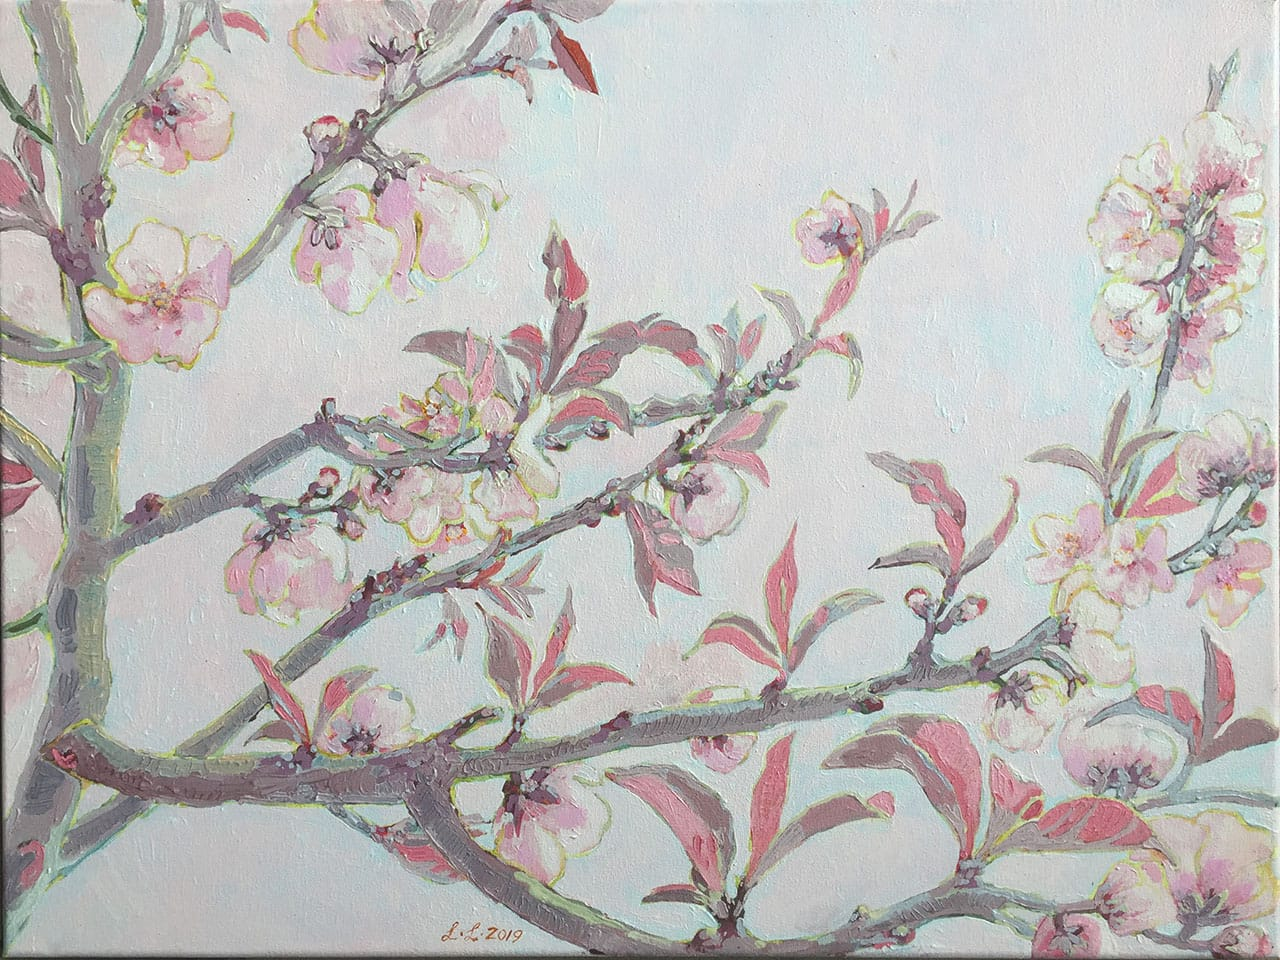 Prune Blossoms, oil on canvas, 18x24inches